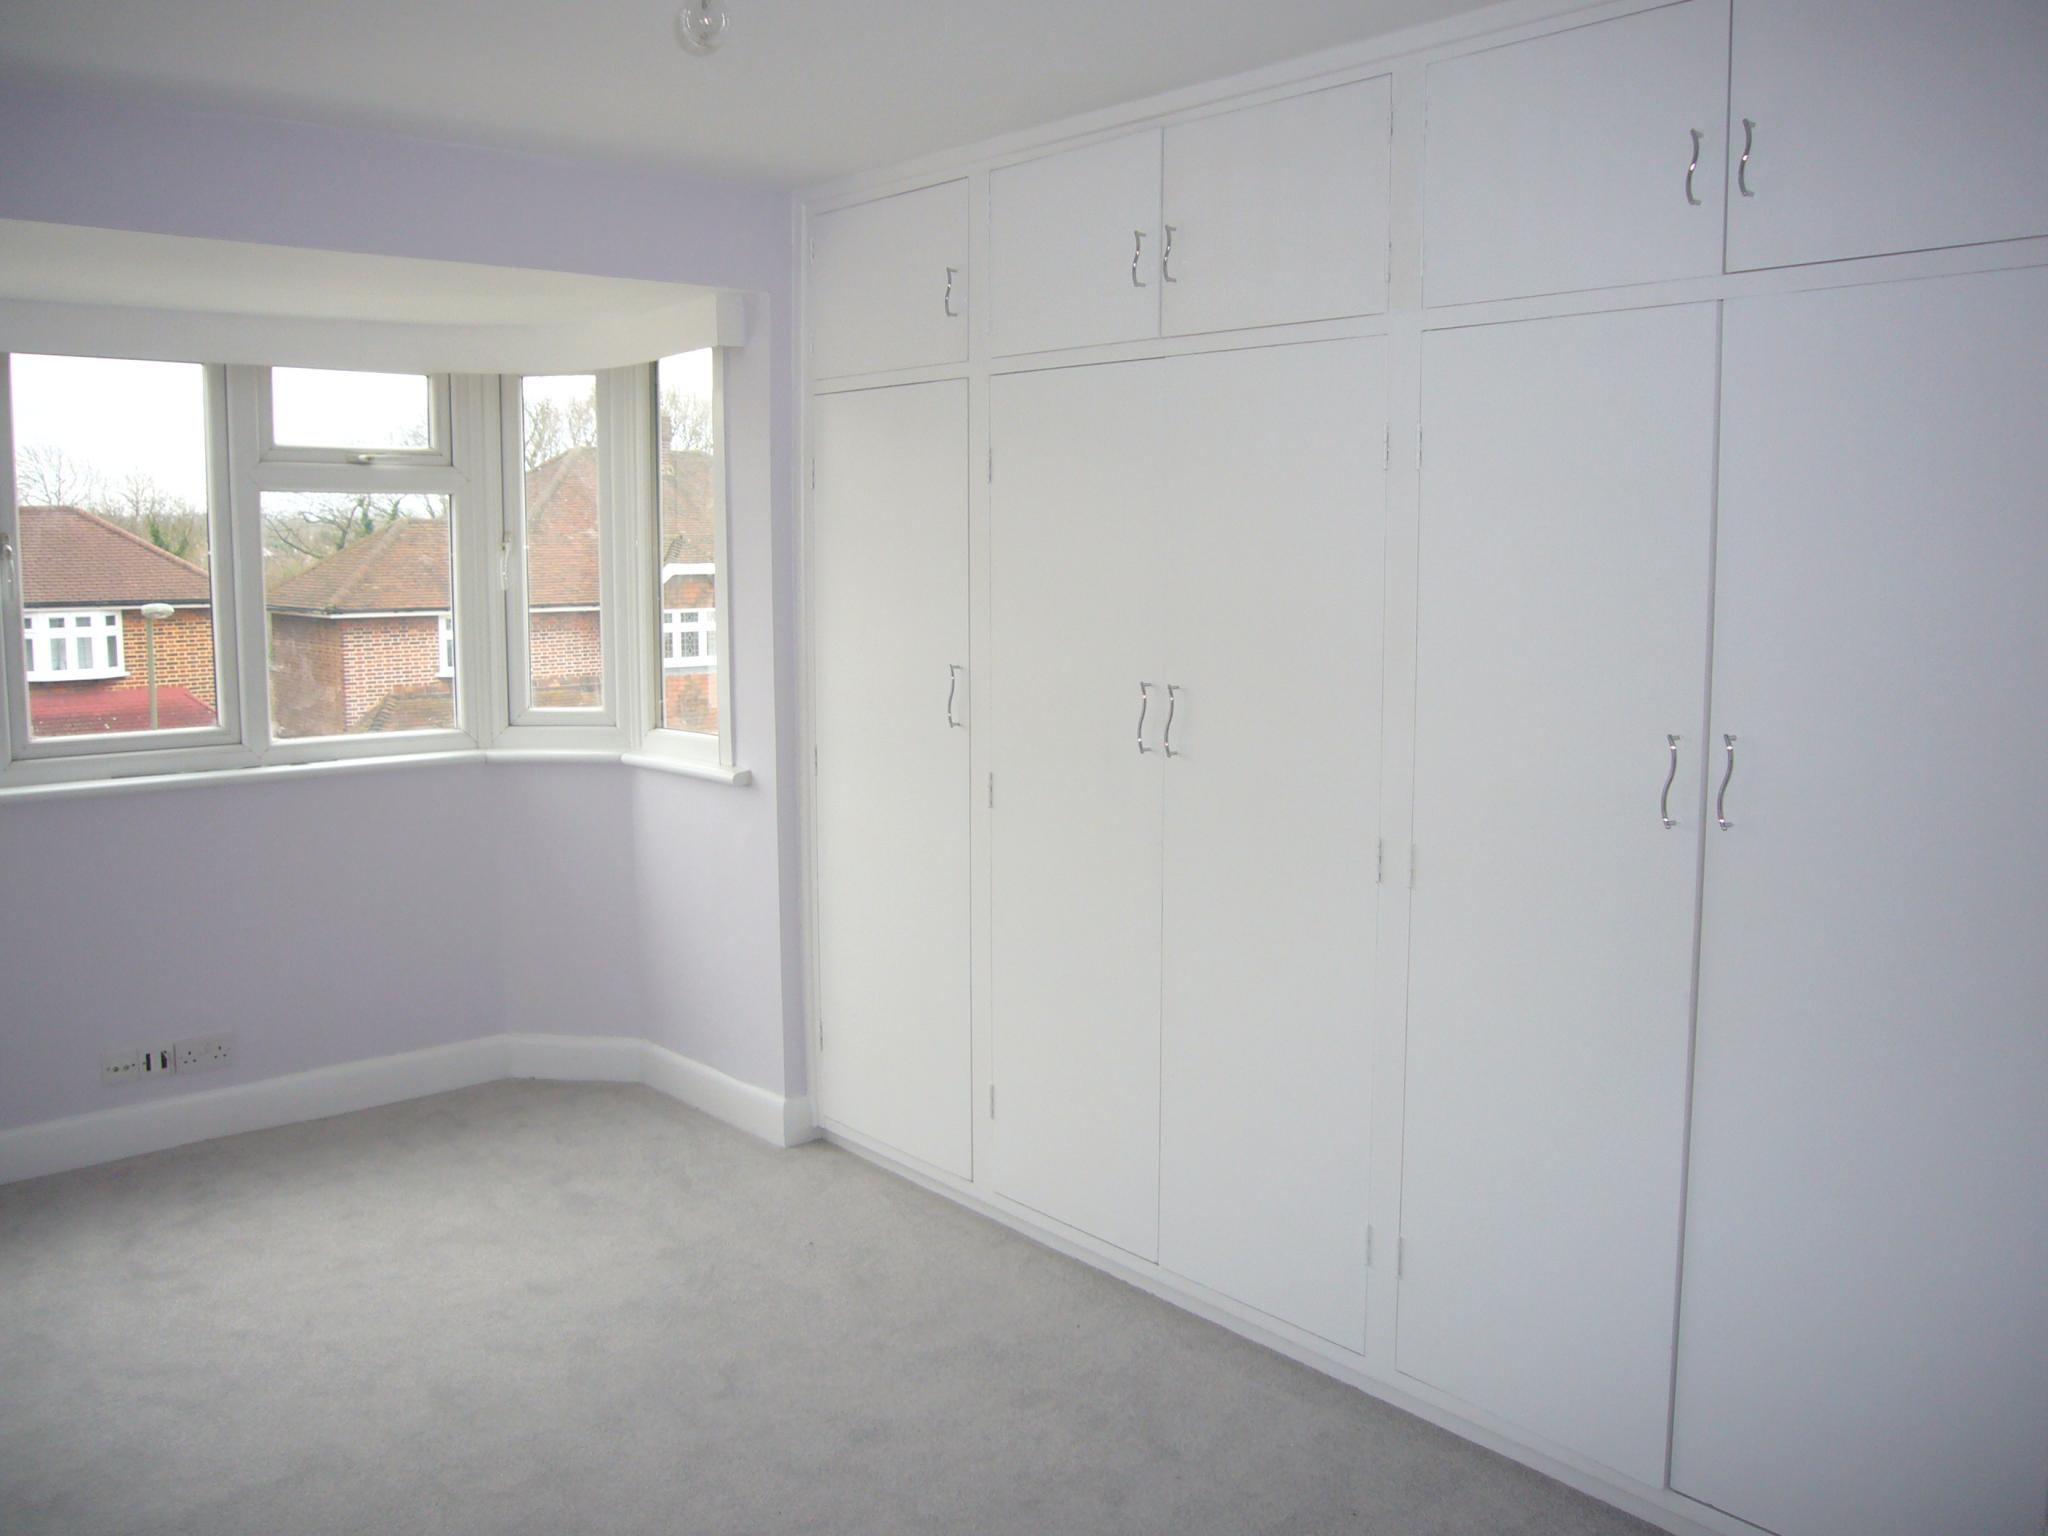 3 bedroom semi-detached house Let Agreed in Epsom - Photograph 10.